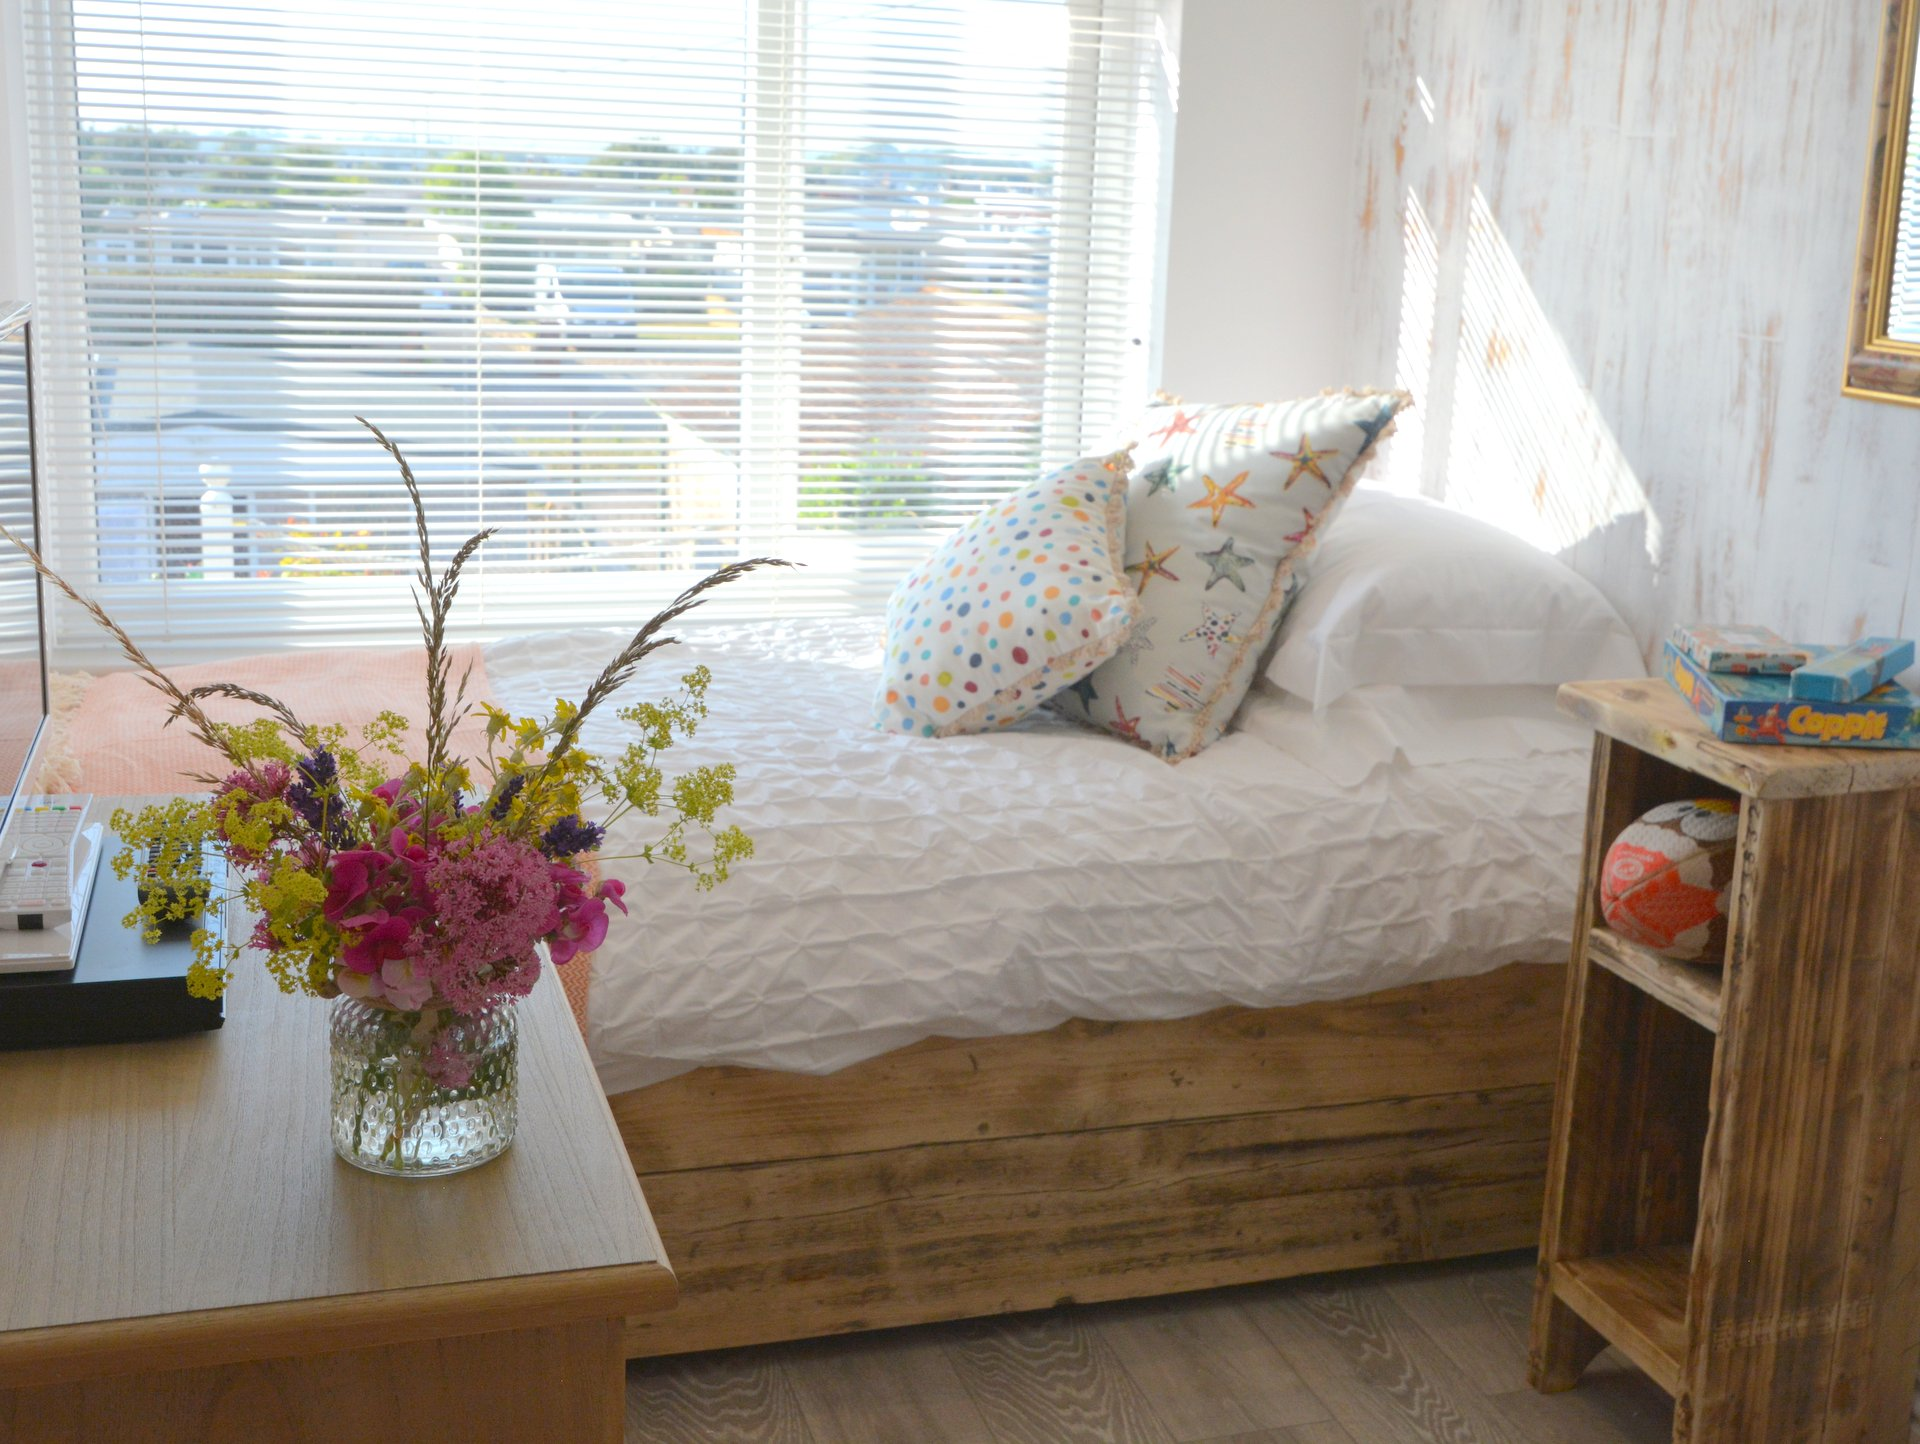 The Beach Hive - Pevensey Bay - Sussex Beach Fronted Holiday Cottage - Sleeps 6 - Twin Bedroom